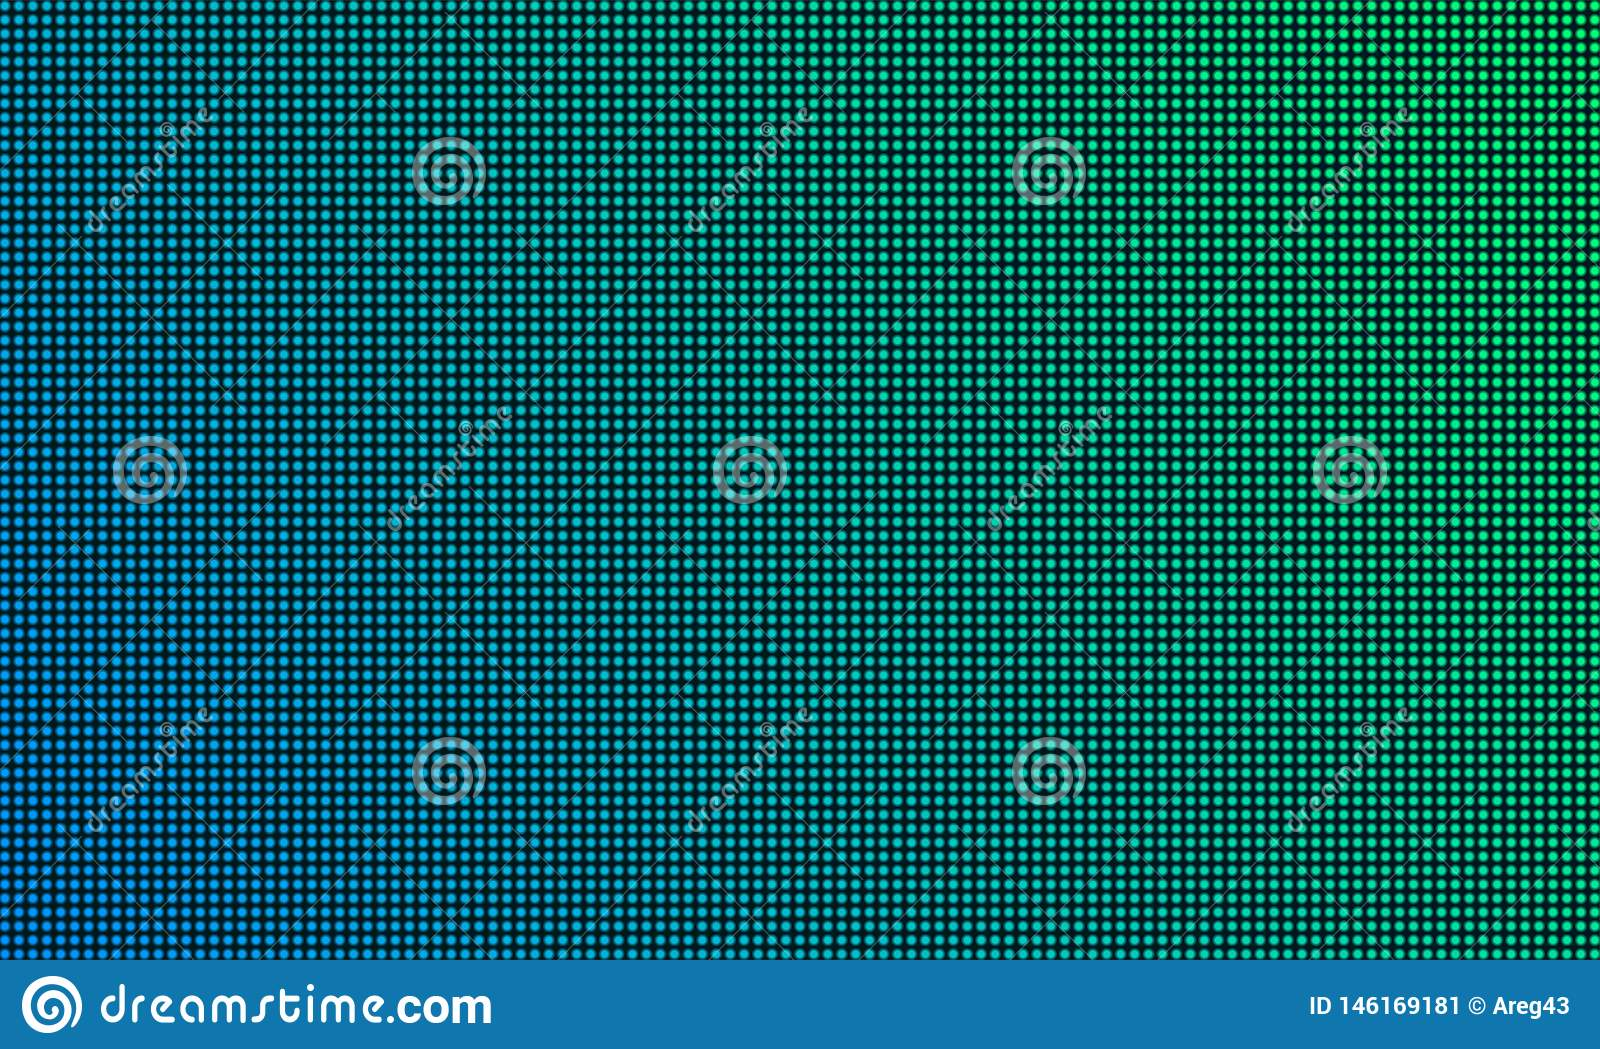 LED TV screen monitor with diode light texture background. Vector video wall digital led tv display with gradient color